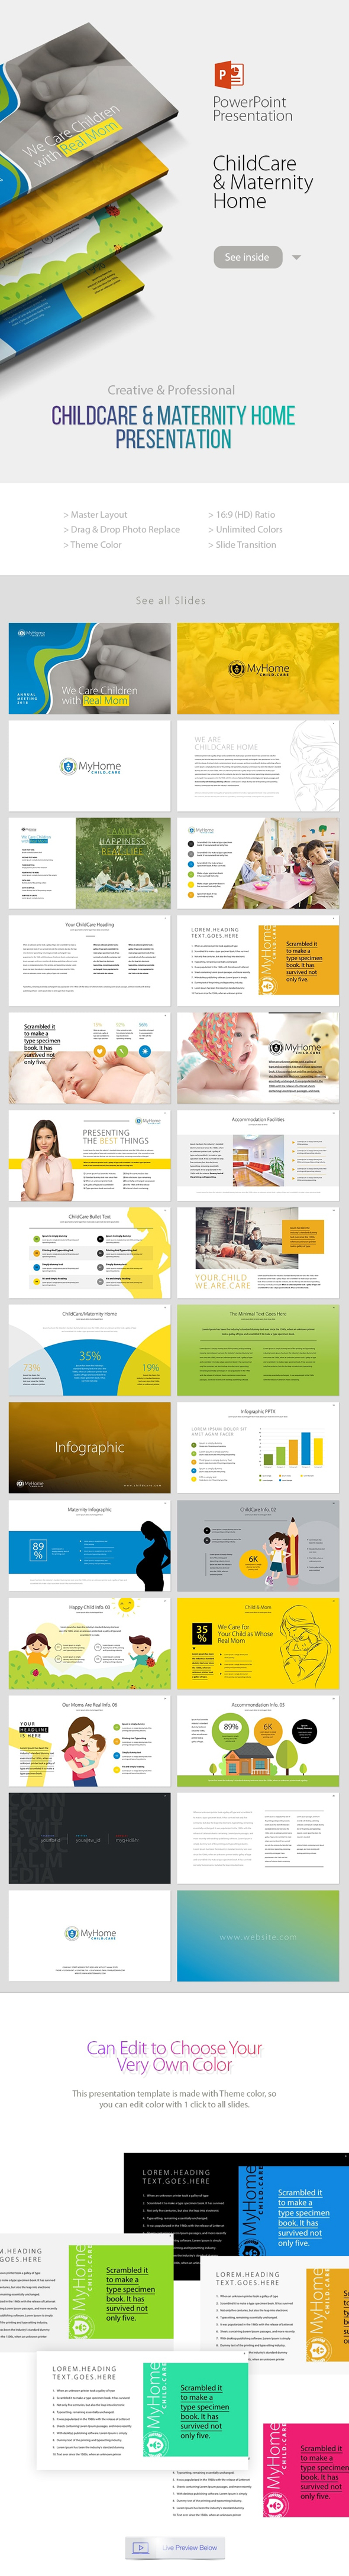 Child Care & Maternity Home Powerpoint Presentation - Business PowerPoint Templates